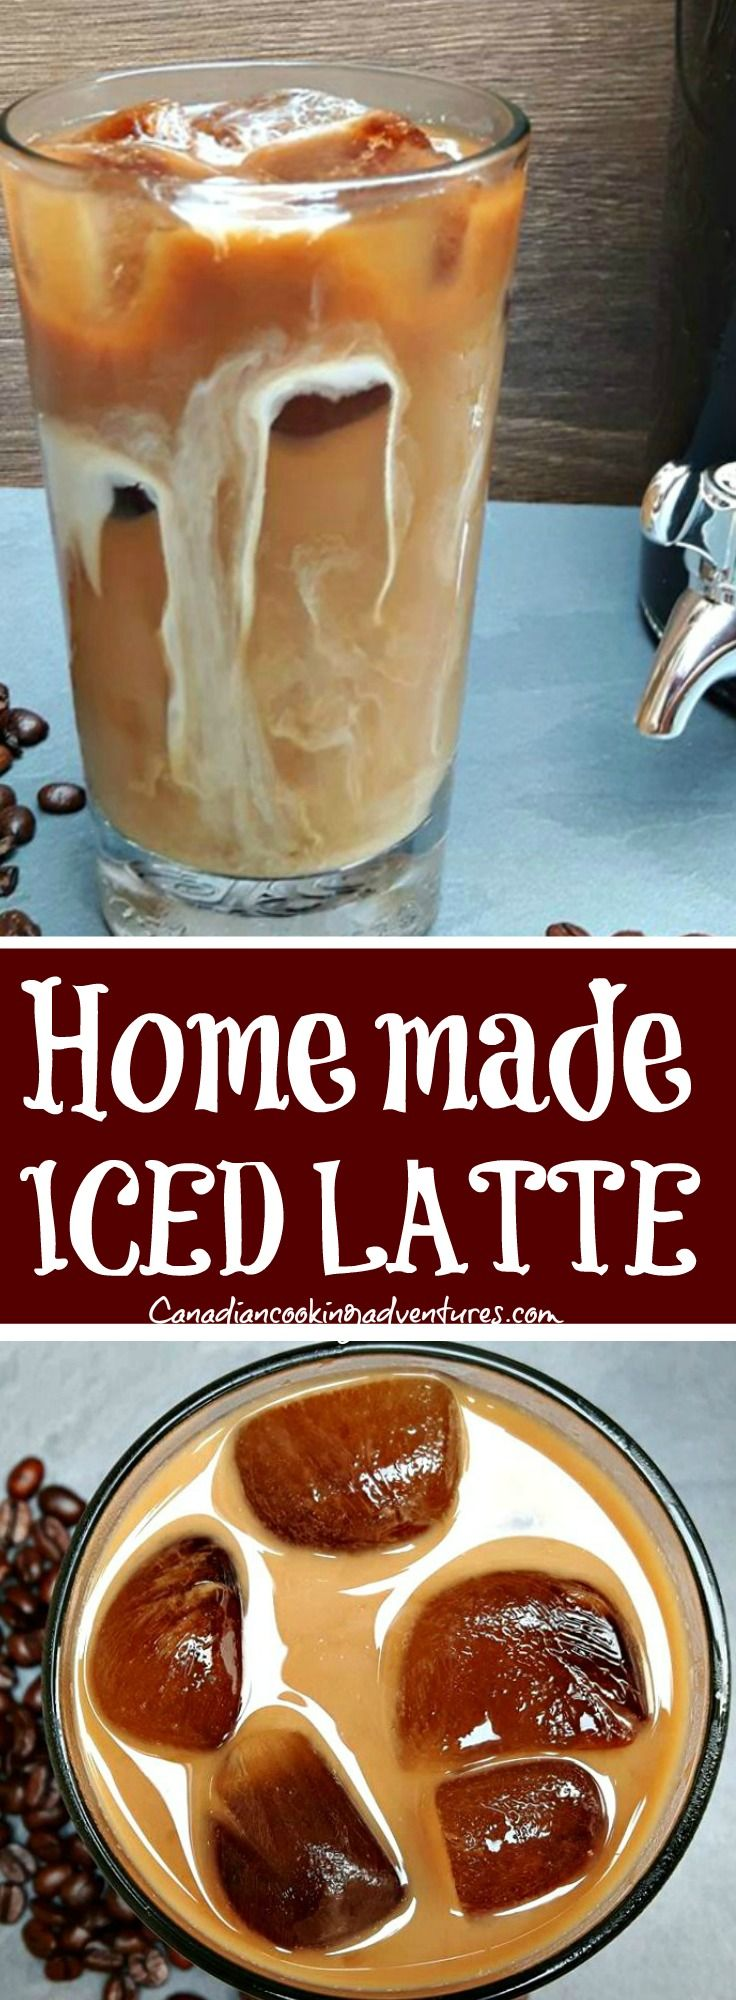 Iced Latte in 2019 Iced latte, Coffee recipes, Fun easy